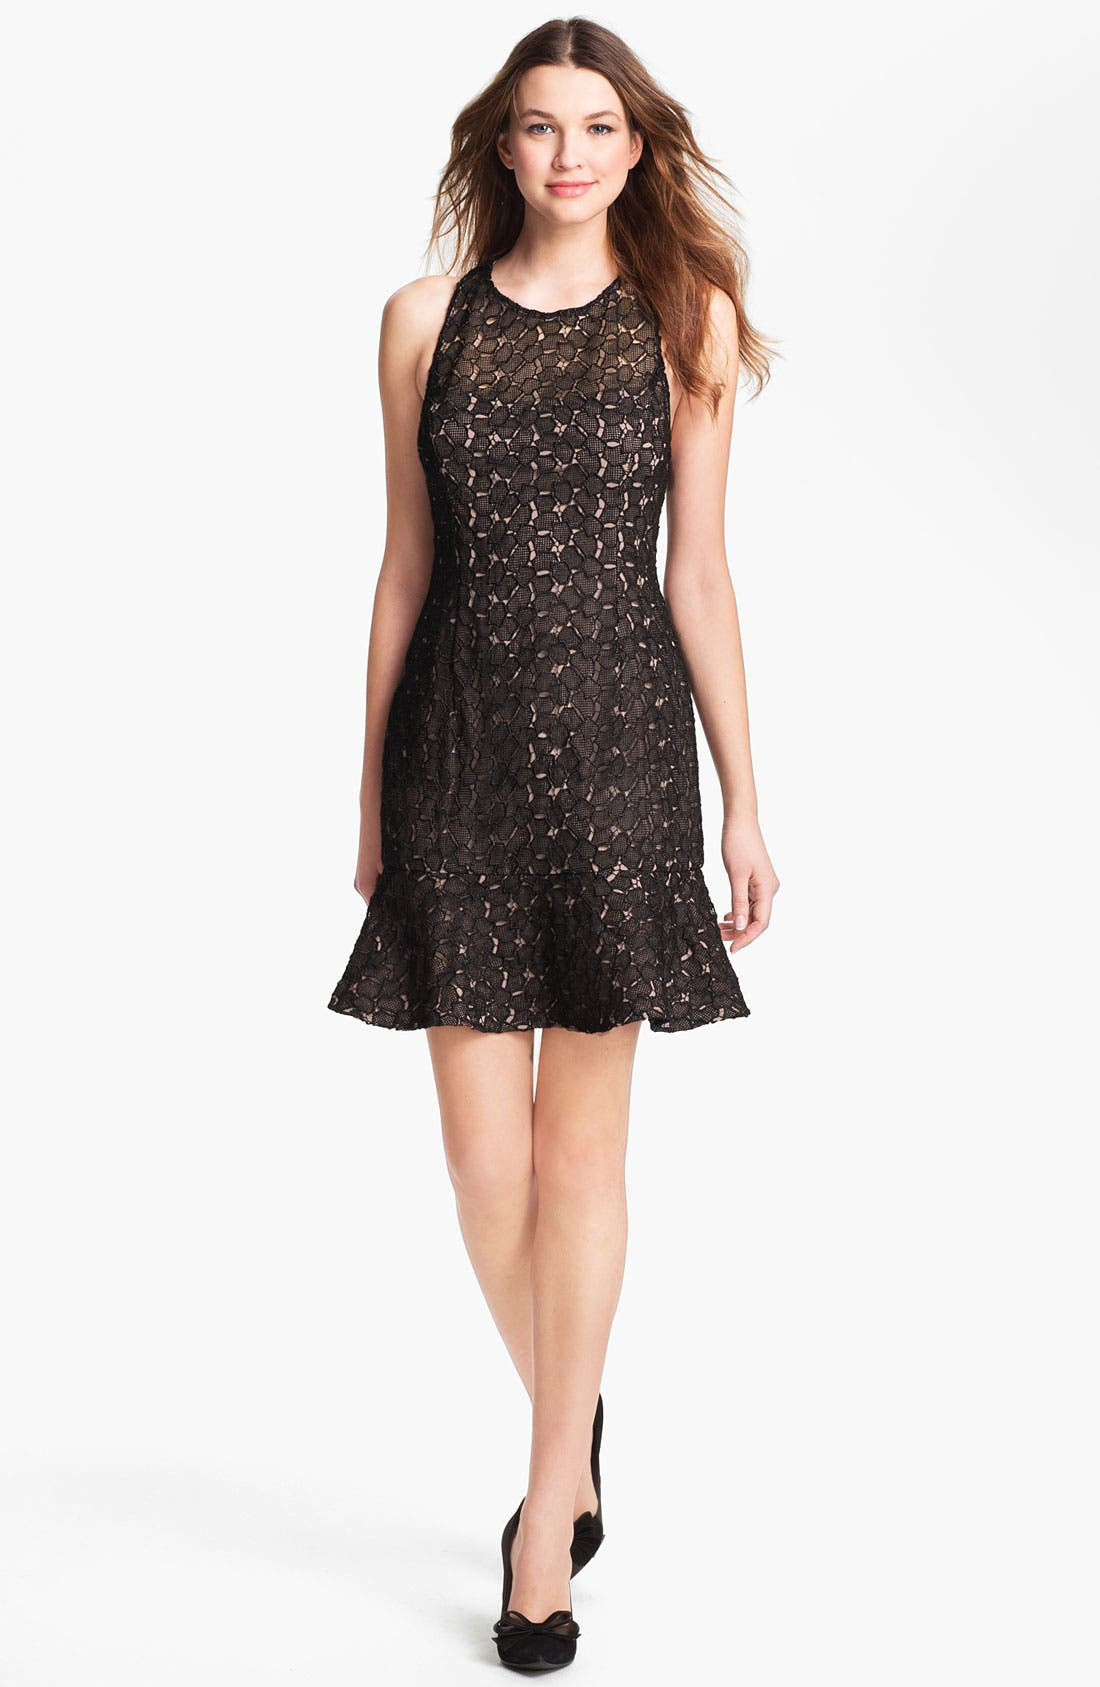 Alternate Image 1 Selected - Adrianna Papell Racerback Lace Dress